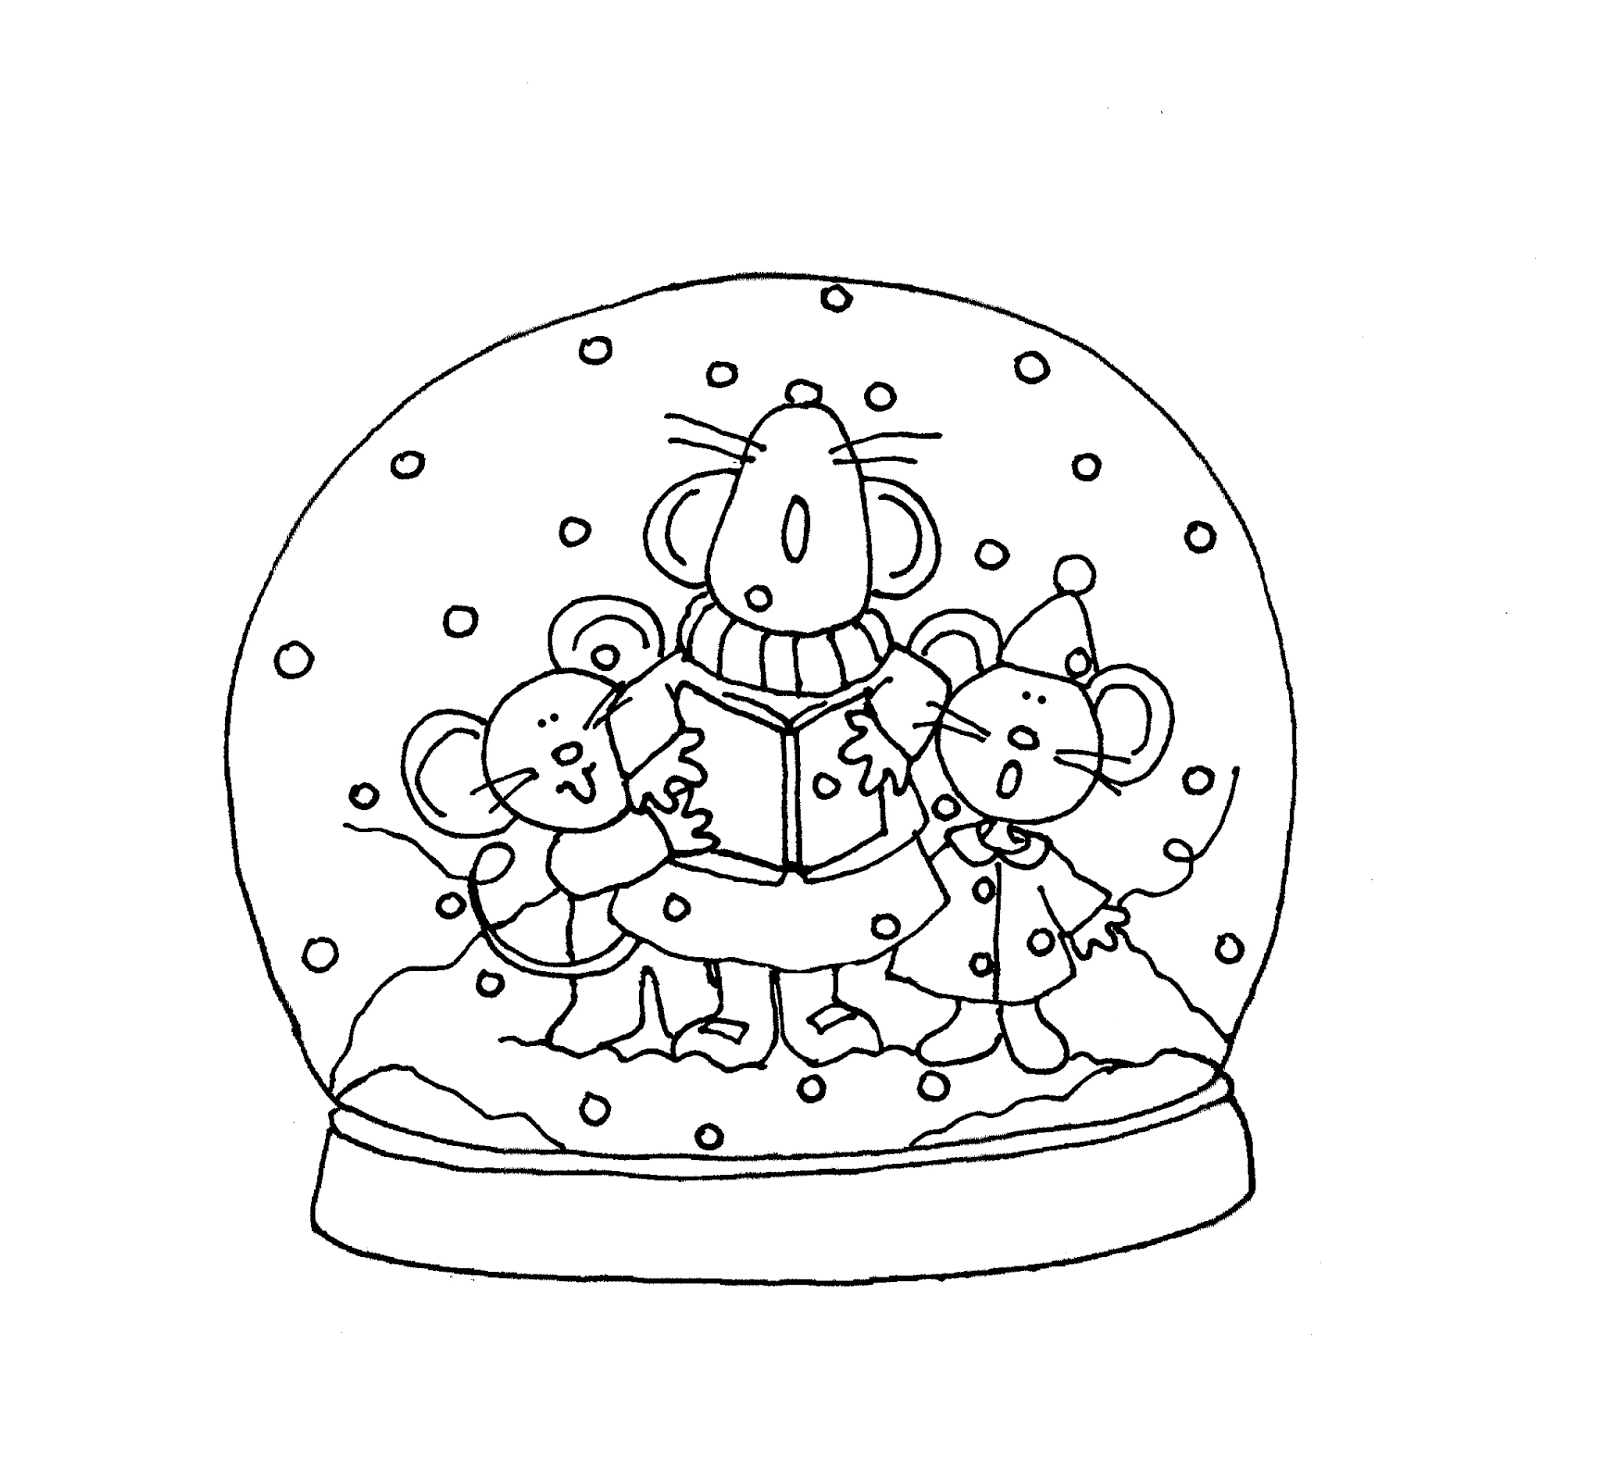 christmas snow globes coloring pages | Free Dearie Dolls Digi Stamps: Singing Mousies Snowglobe ...